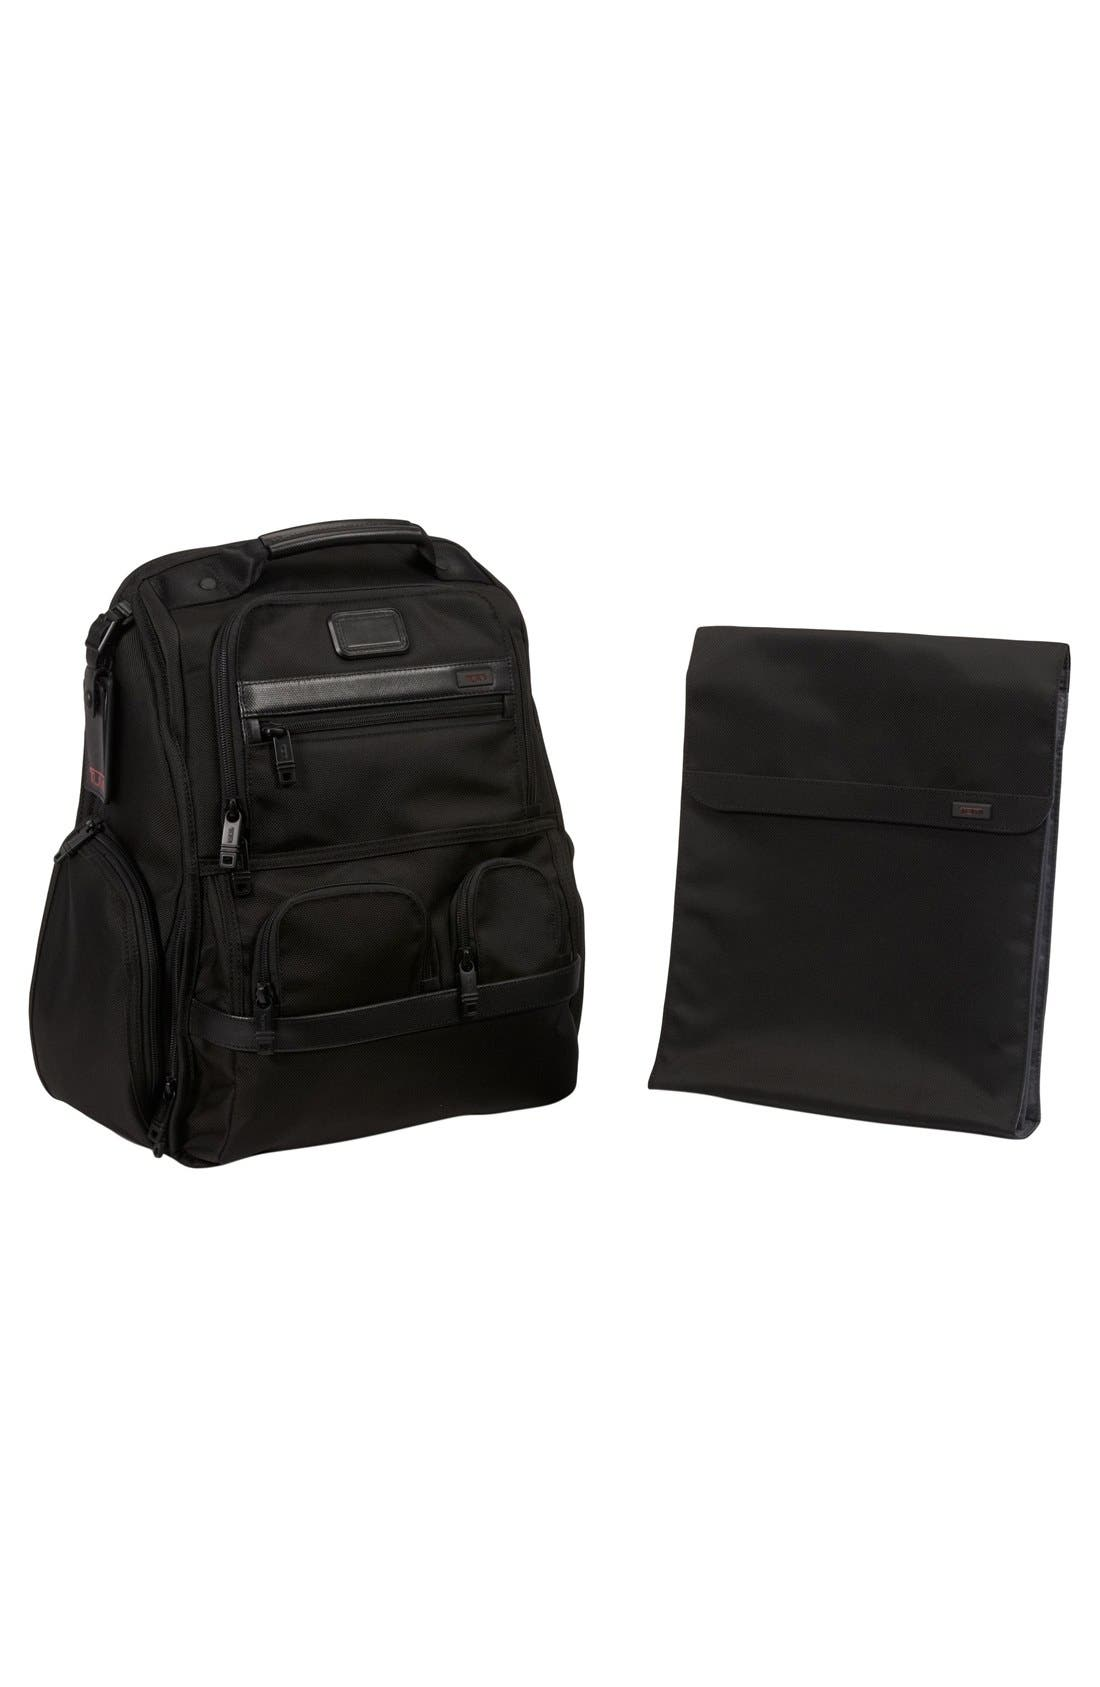 Alpha 2 Compact Laptop Brief Pack<sup>®</sup>,                             Alternate thumbnail 6, color,                             007